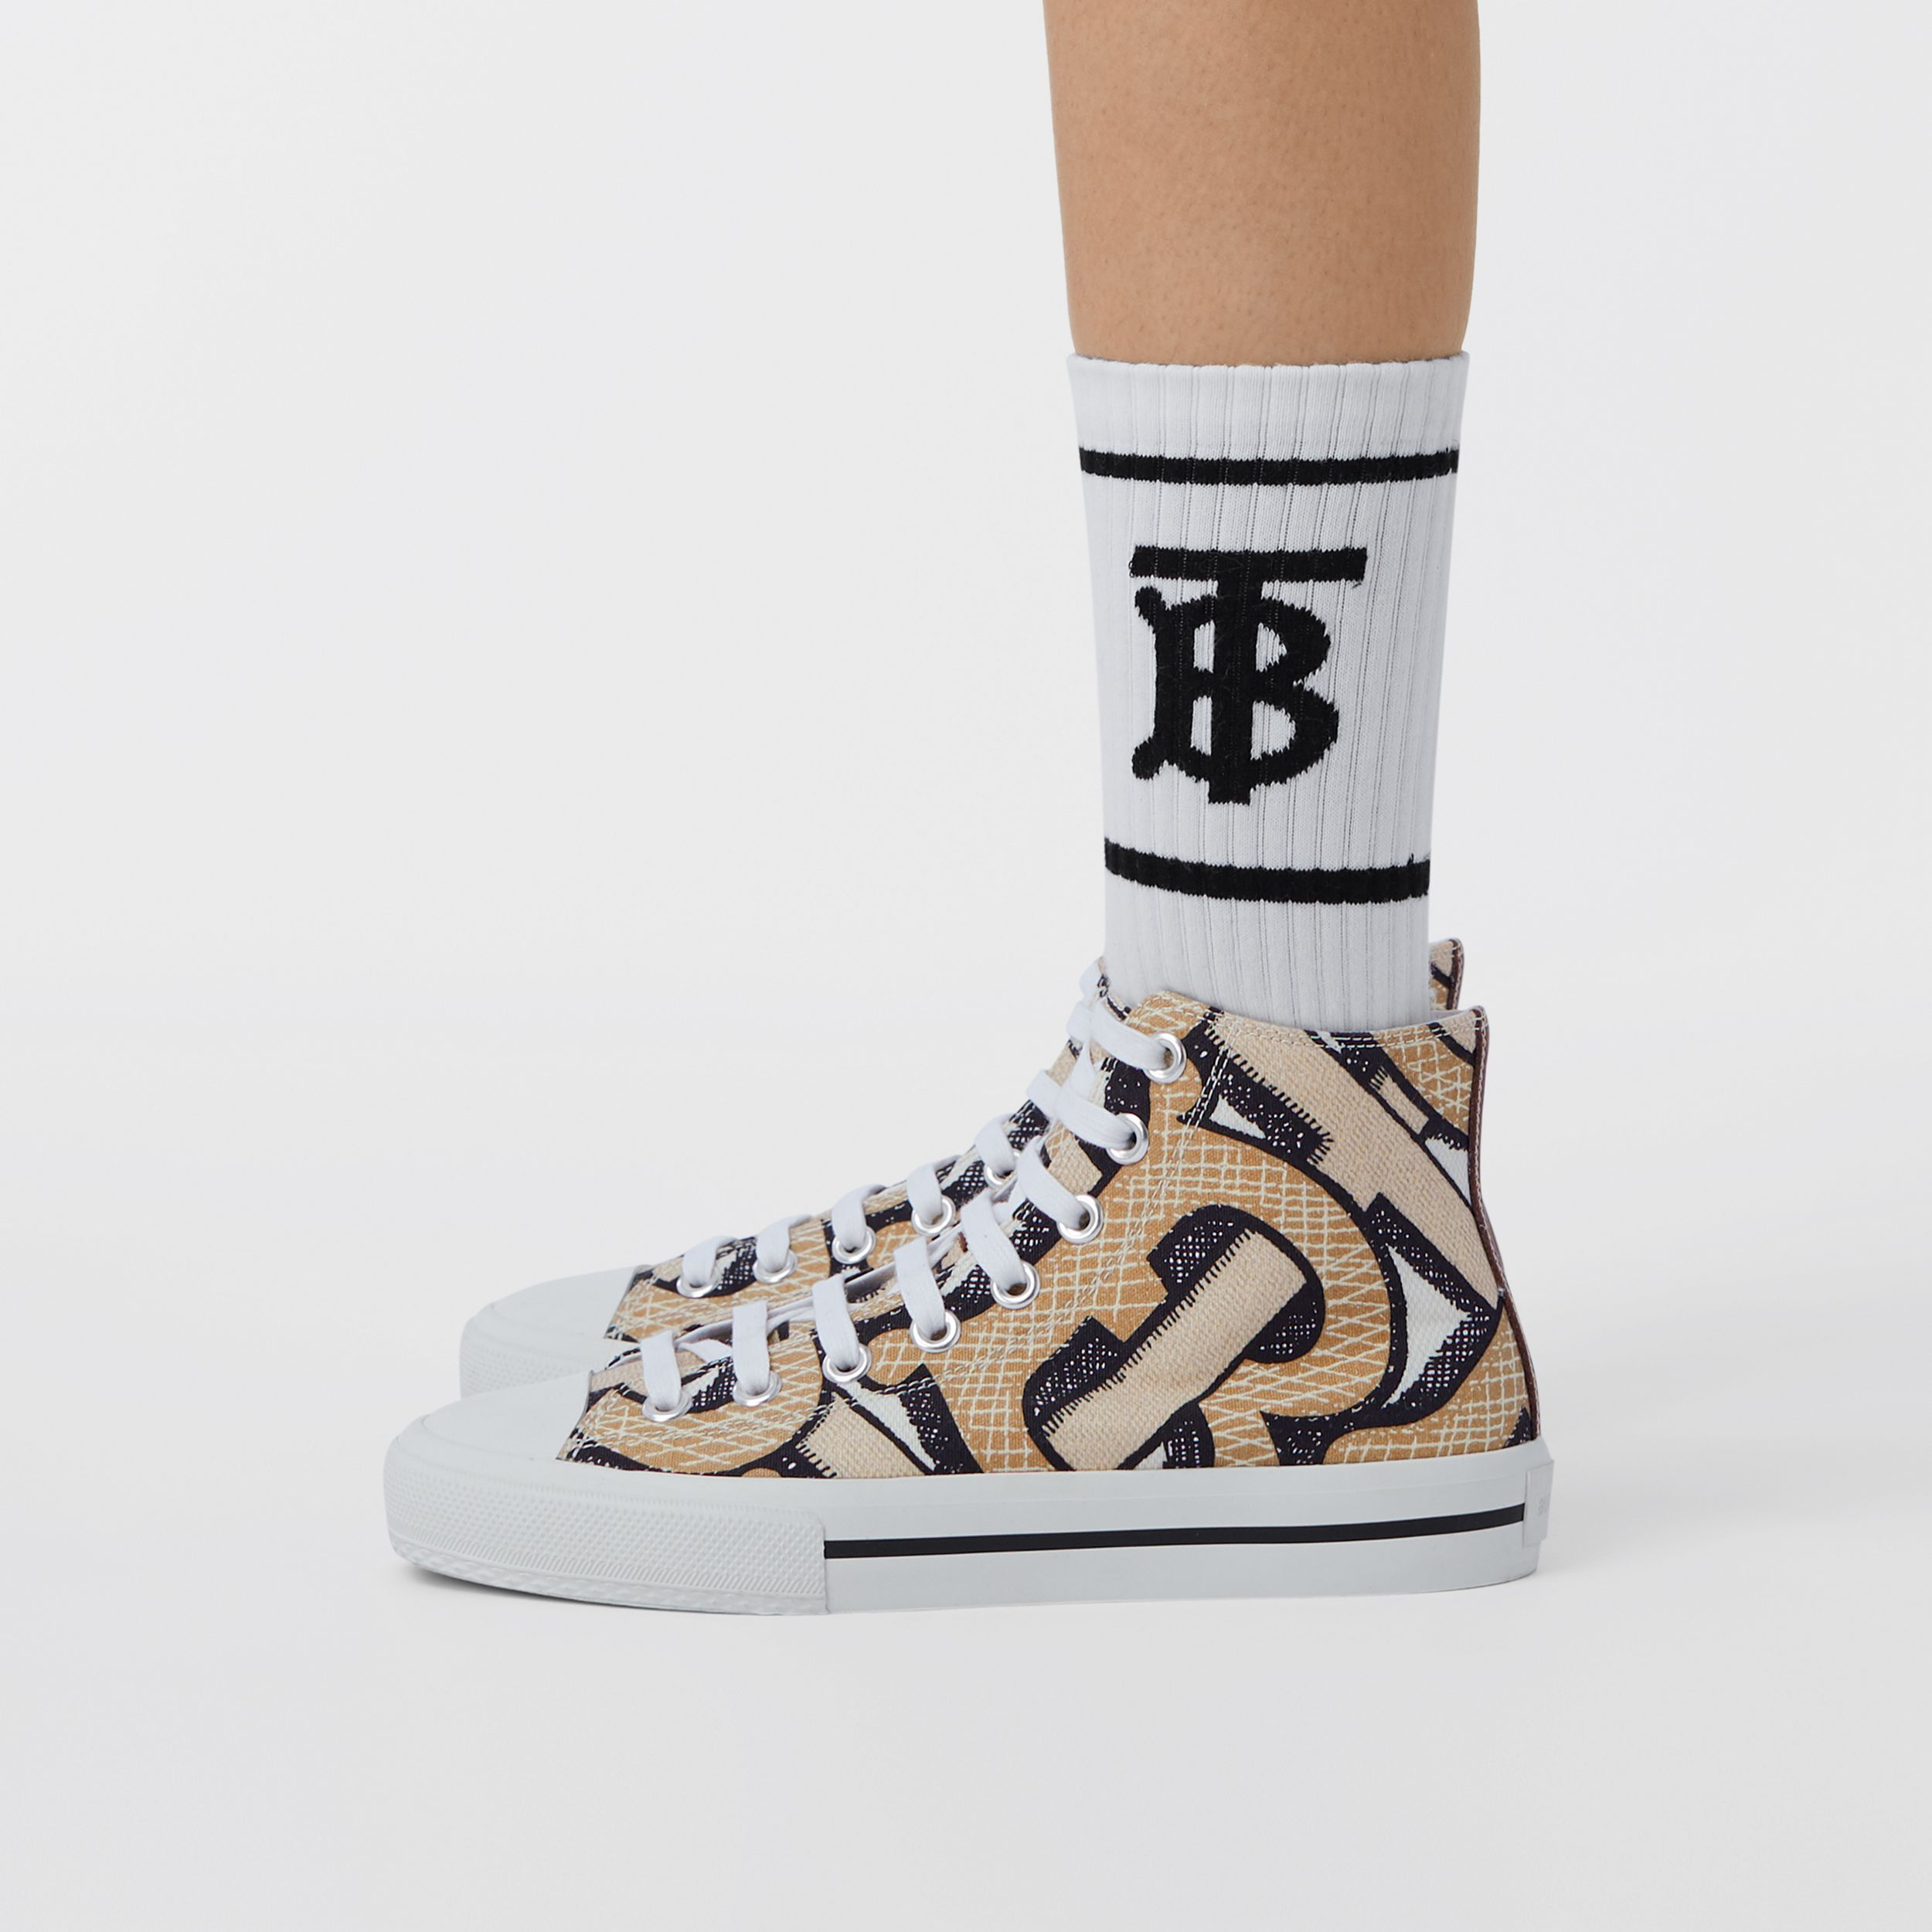 Monogram Print Cotton Canvas High-top Sneakers in Dark Beige - Women | Burberry - 3